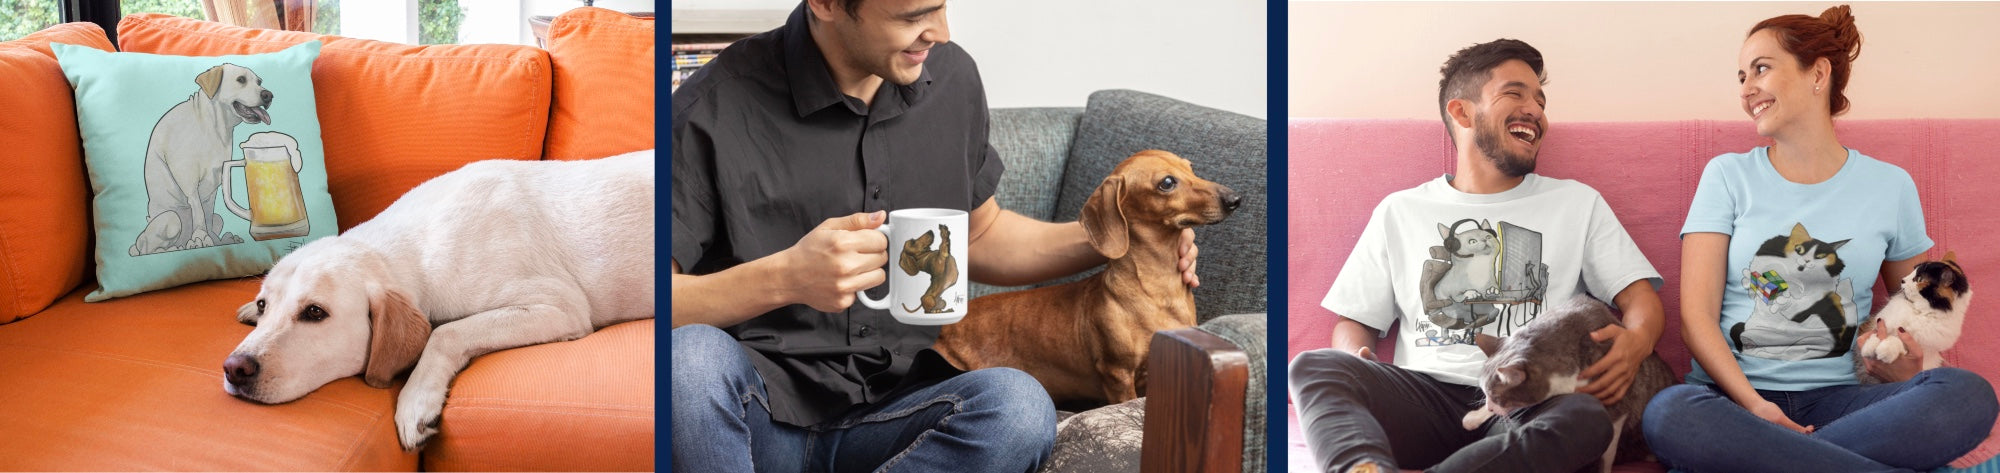 Custom products featuring your pets